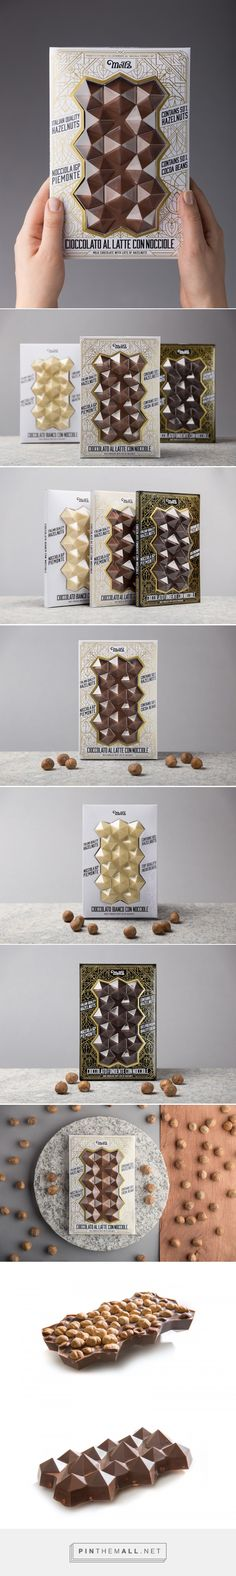 Meltz Chocolates by Adrian Chytry for Foxtrot Studio. Source: Packaging of the World. Pin curated by #SFields99 #packaging #design #inspiration #ideas #innovation #structural #interesting #different #creative #product #consumer #chocolate #sweet #snack #box #cardboard #window #pyramid